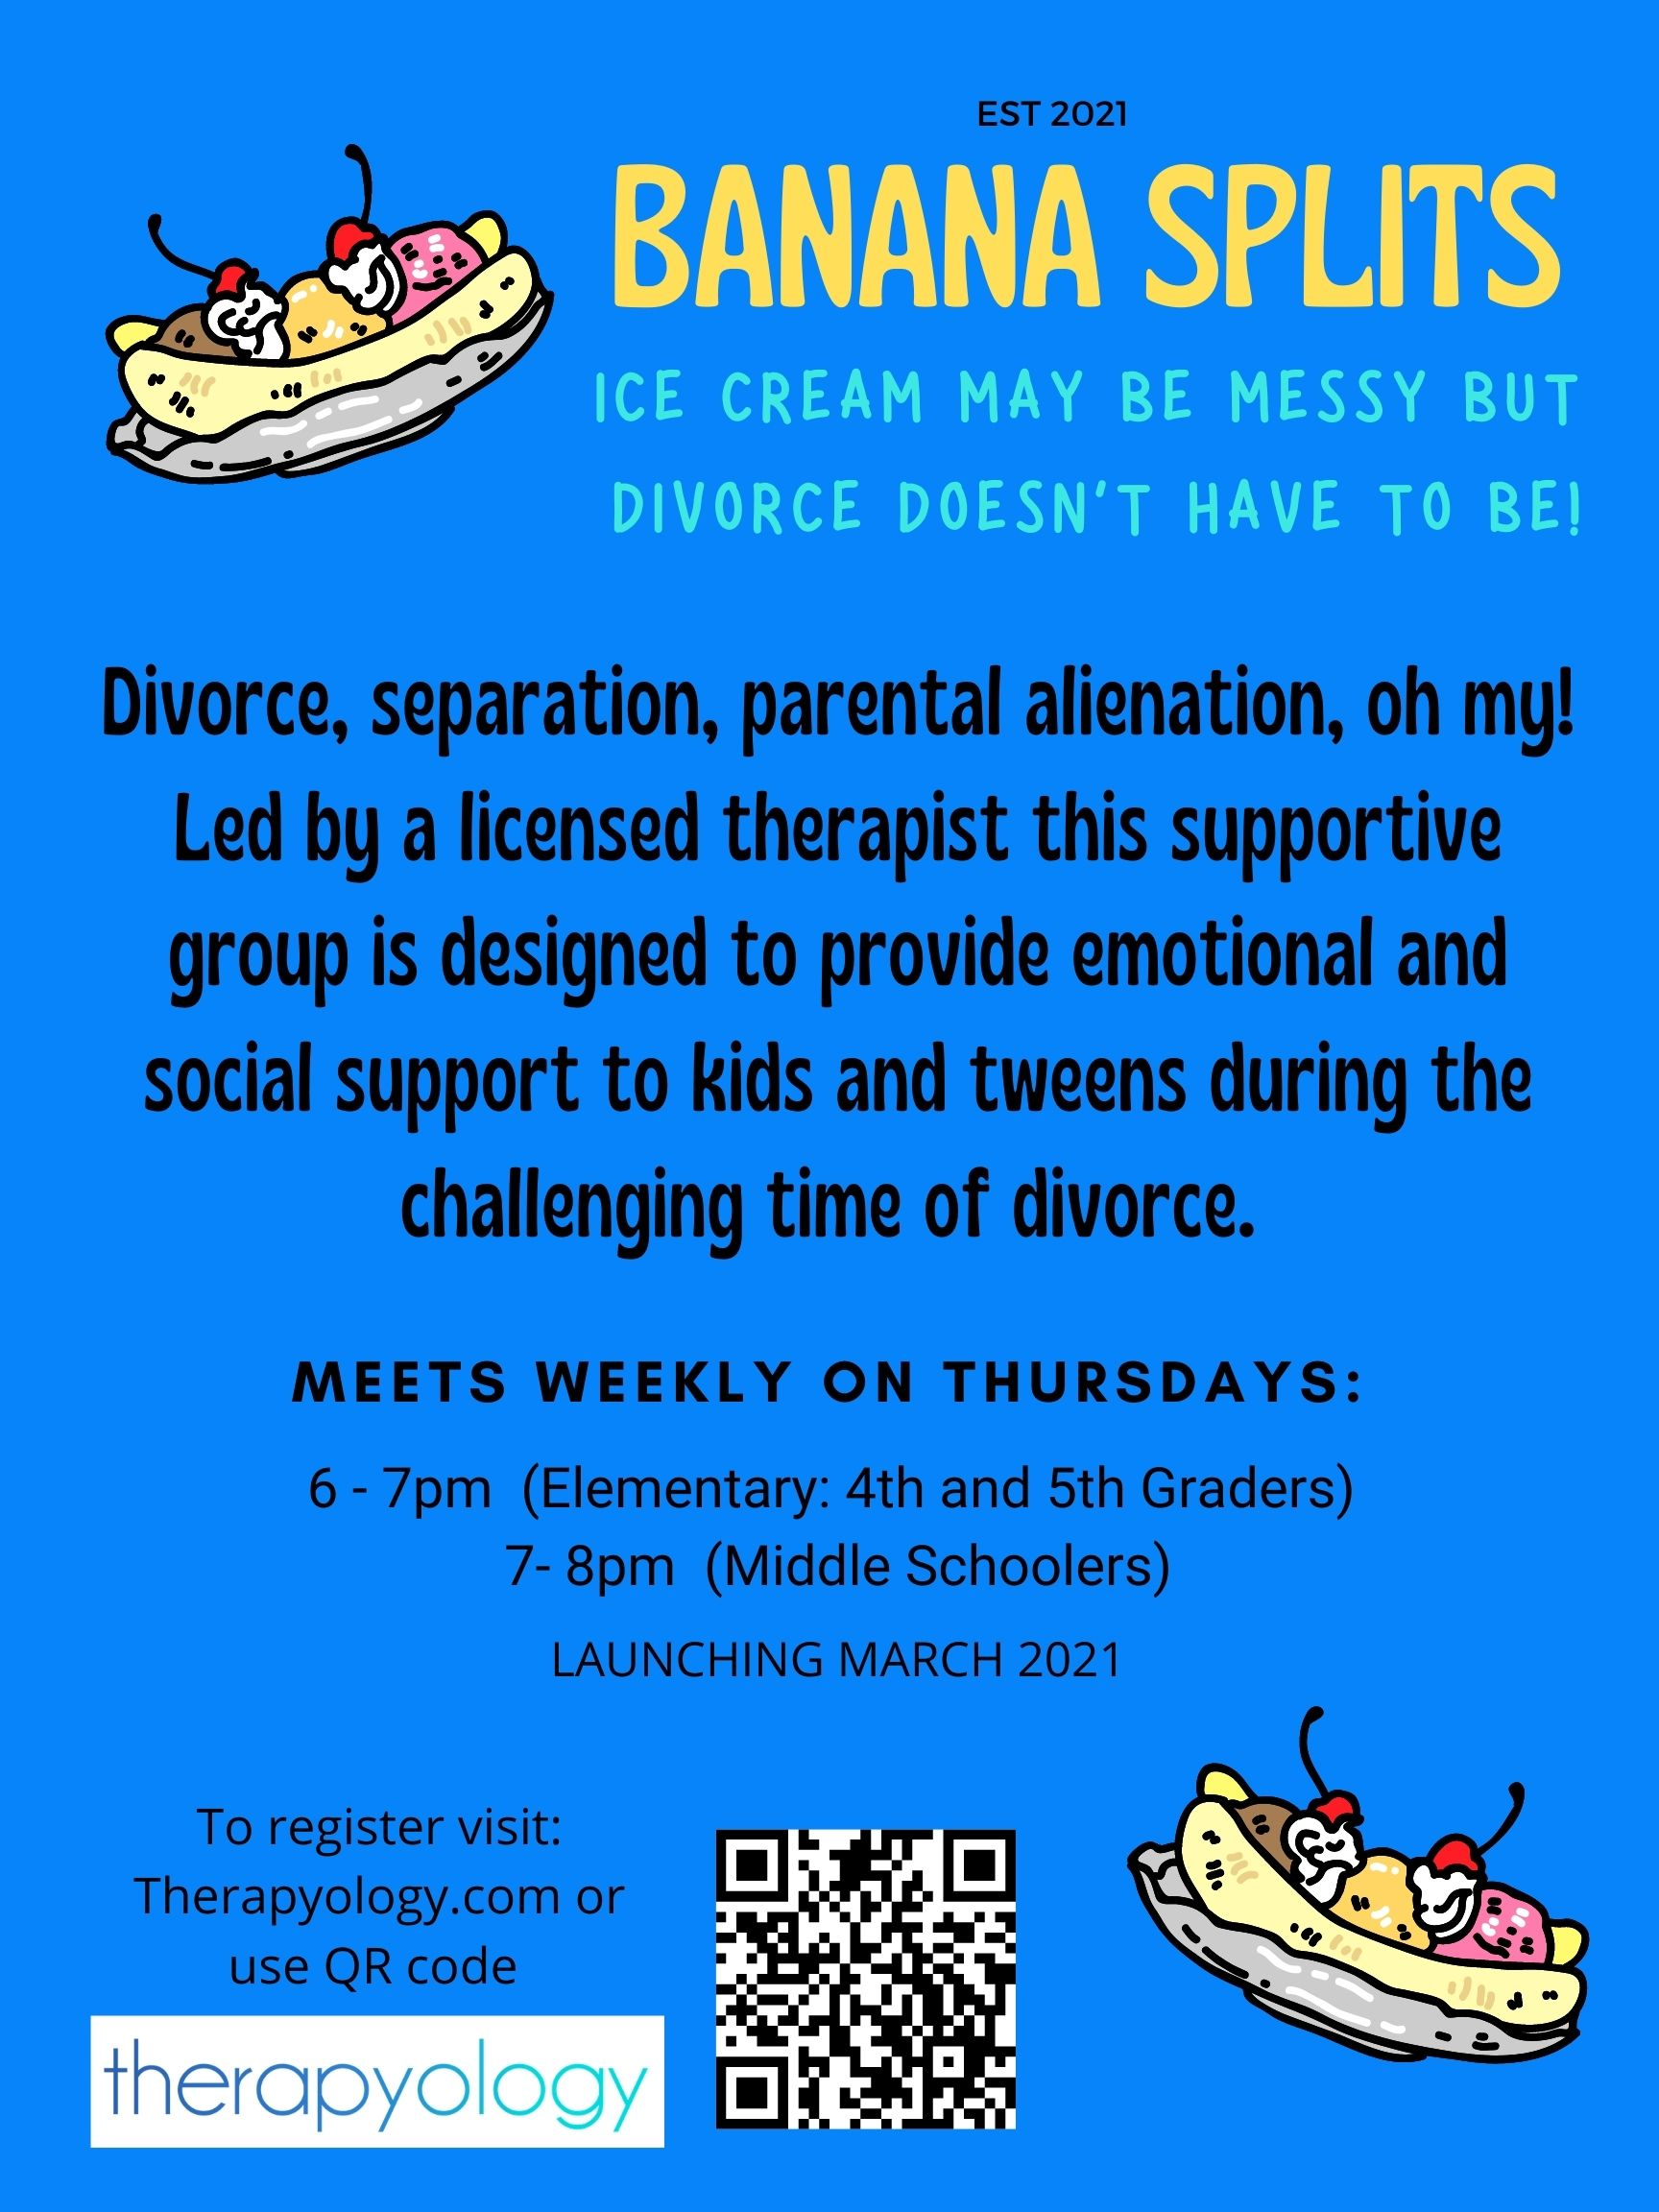 """Poster that reads """"Est 2021. Banana Splits. Ice cream may be messy but divorce doesn't have to be! Divorce, separation, parental alienation, oh my! Led by a licensed therapist this supportive group is designed to provide emotional and social support to kids and tweens during the challenging time of divorce. Meets weekly on thursdays: 6-7pm (elementary: 4th and 5h graders), 7-8pm (middle schoolers). Launching March 2021. To register visit: Therapyology.com or use QR code."""" Therapyology offers therapy for children of divorce, therapy for teens of divorce, and more."""